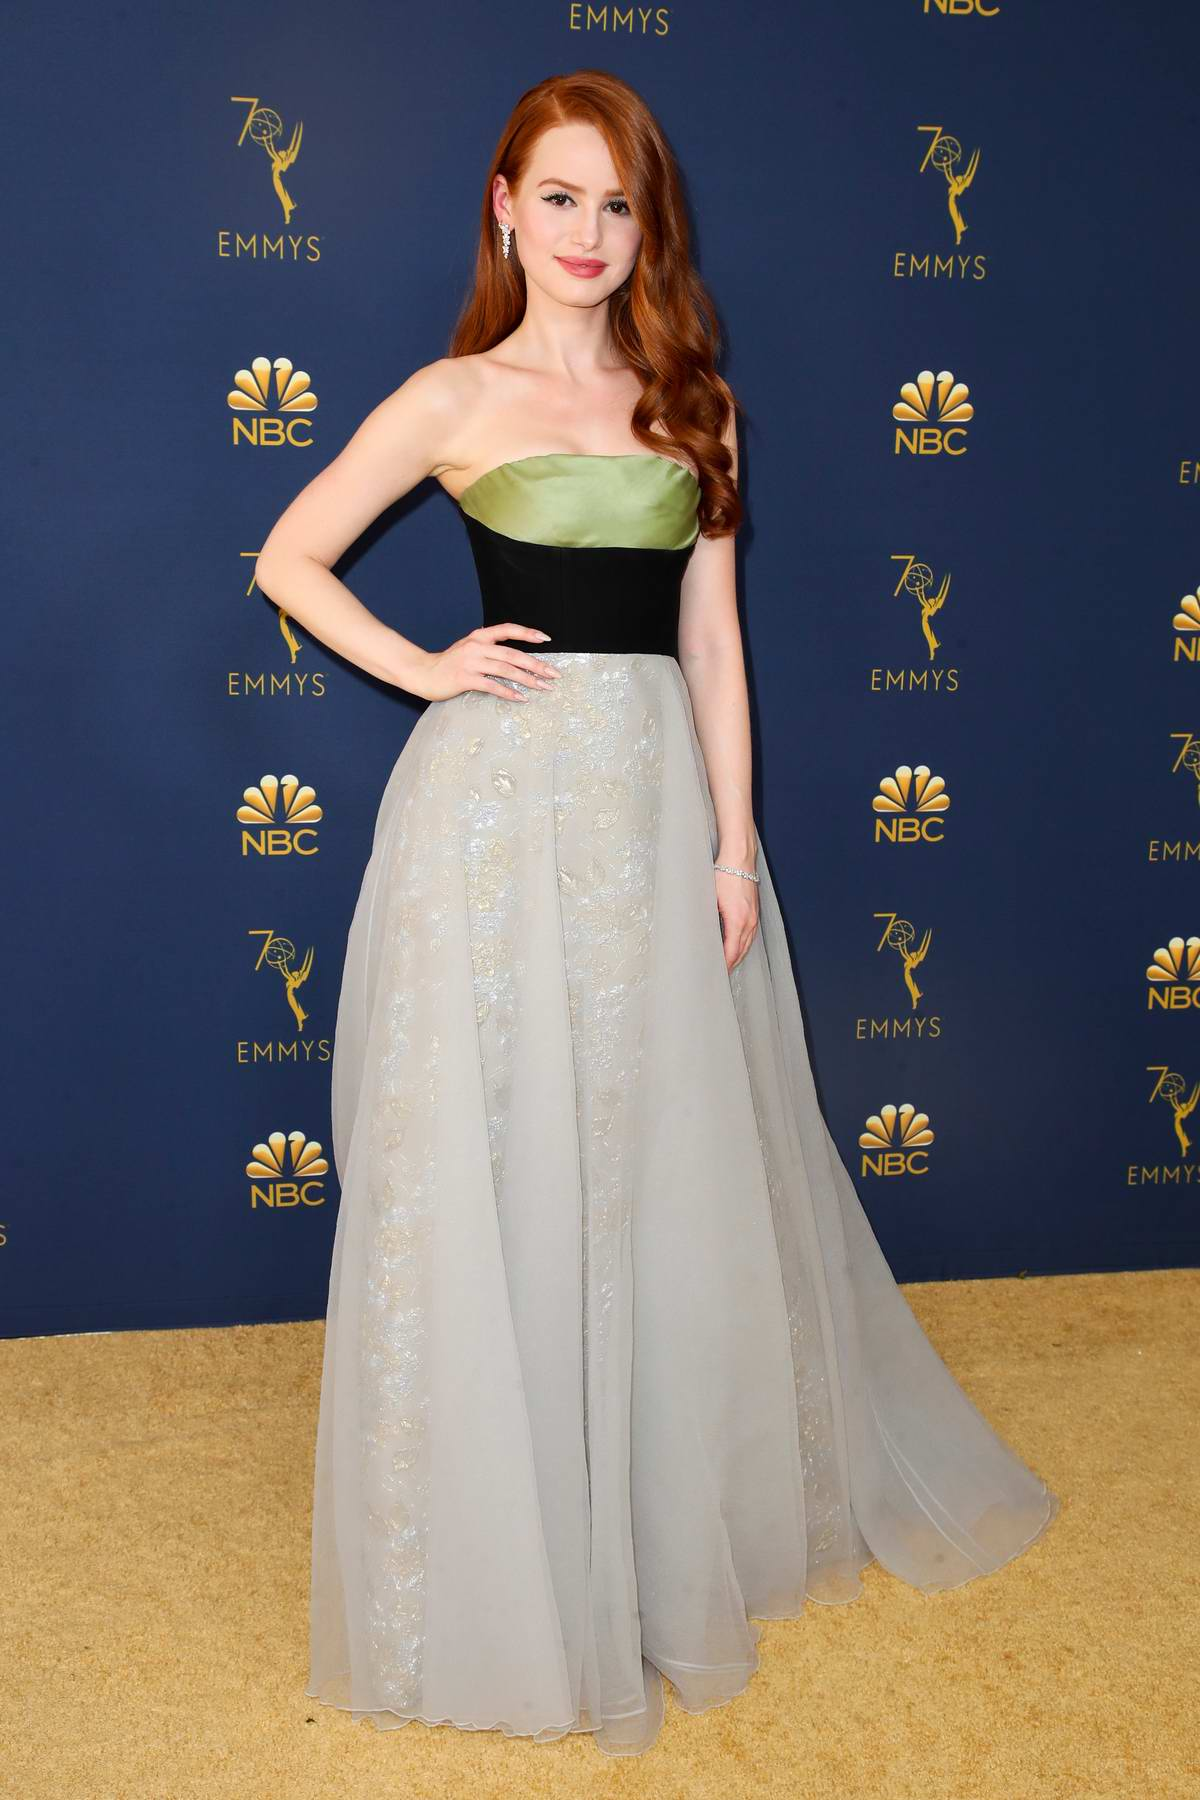 Madelaine Petsche attends the 70th Primetime EMMY Awards (EMMYS 2018) at Microsoft Theater in Los Angeles